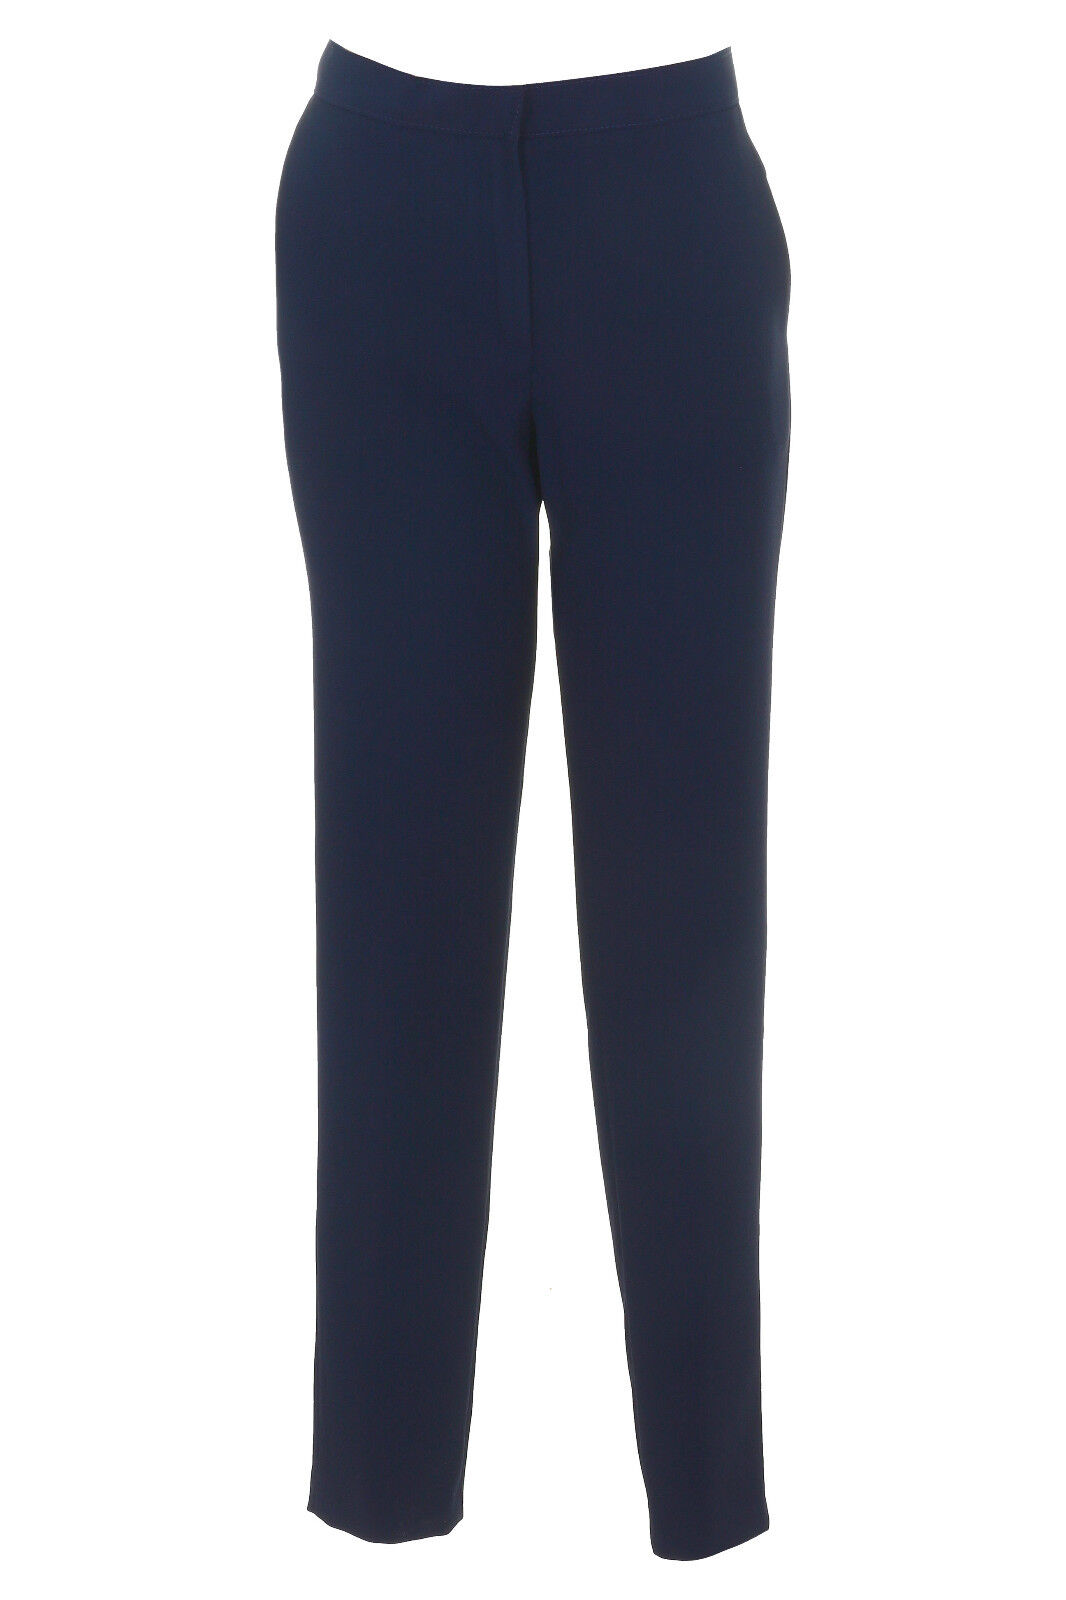 Busy Navy Narrow Leg Womens Trousers with Elastane